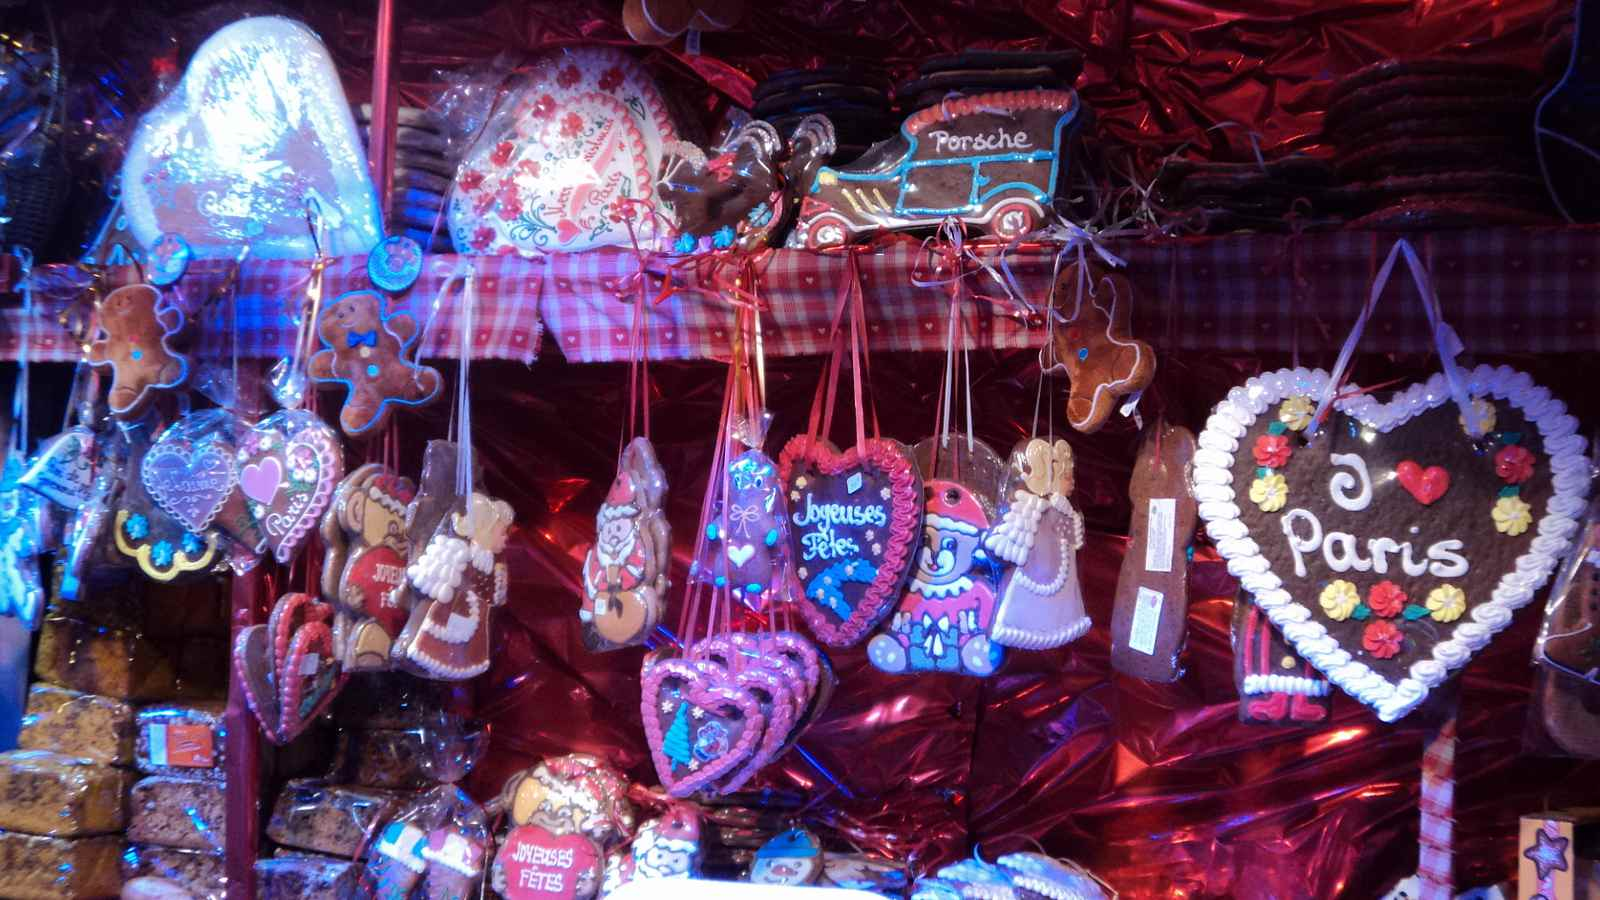 Traditional gingerbread and Christmas cookies lure visitors from a stand at a Parisian holiday market